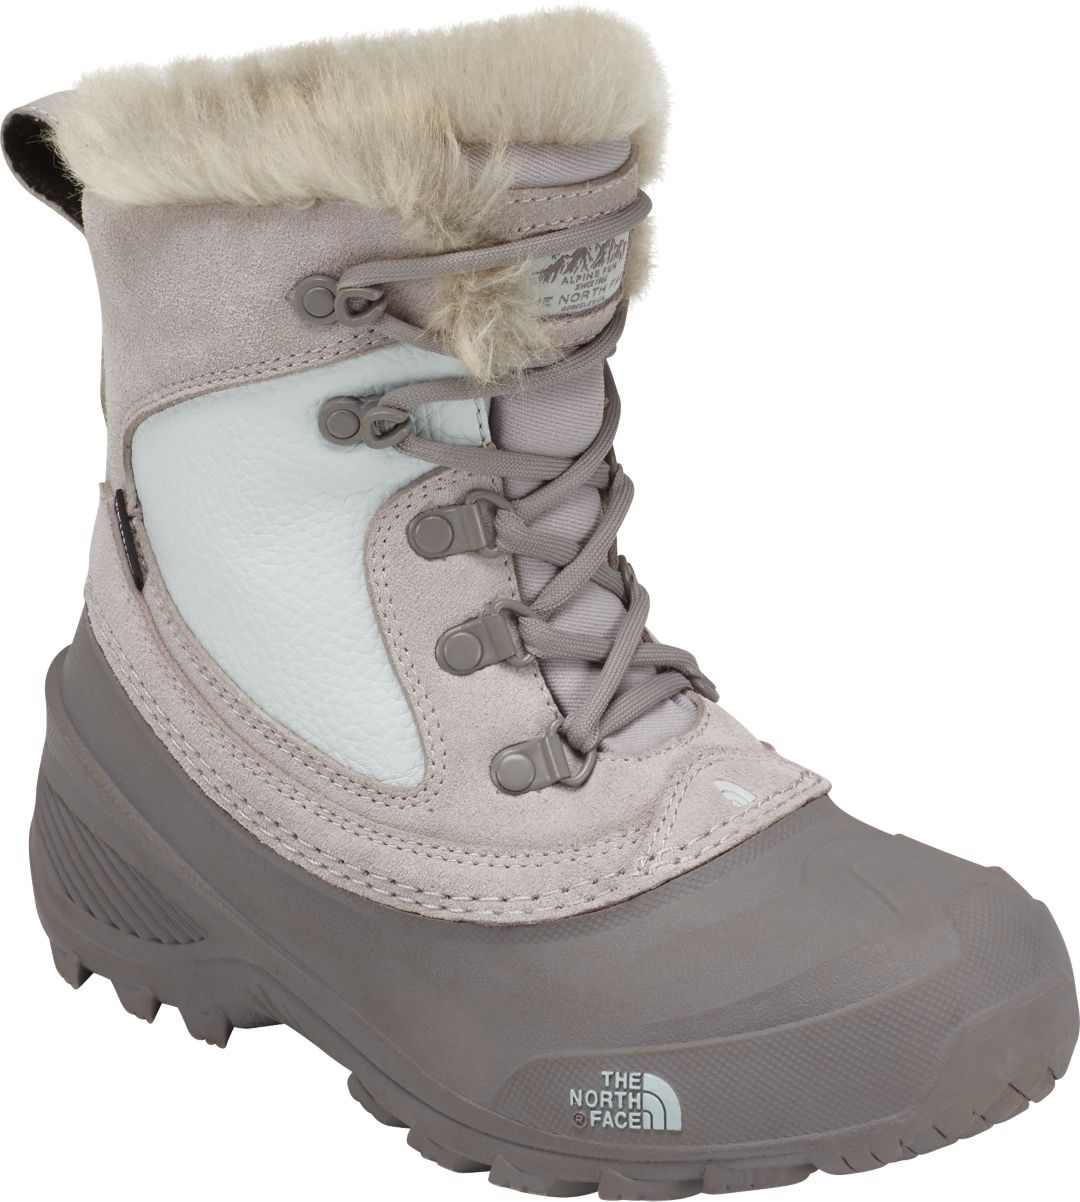 82358d769 The North Face Kids' Shellista Extreme 200g Waterproof Winter Boots